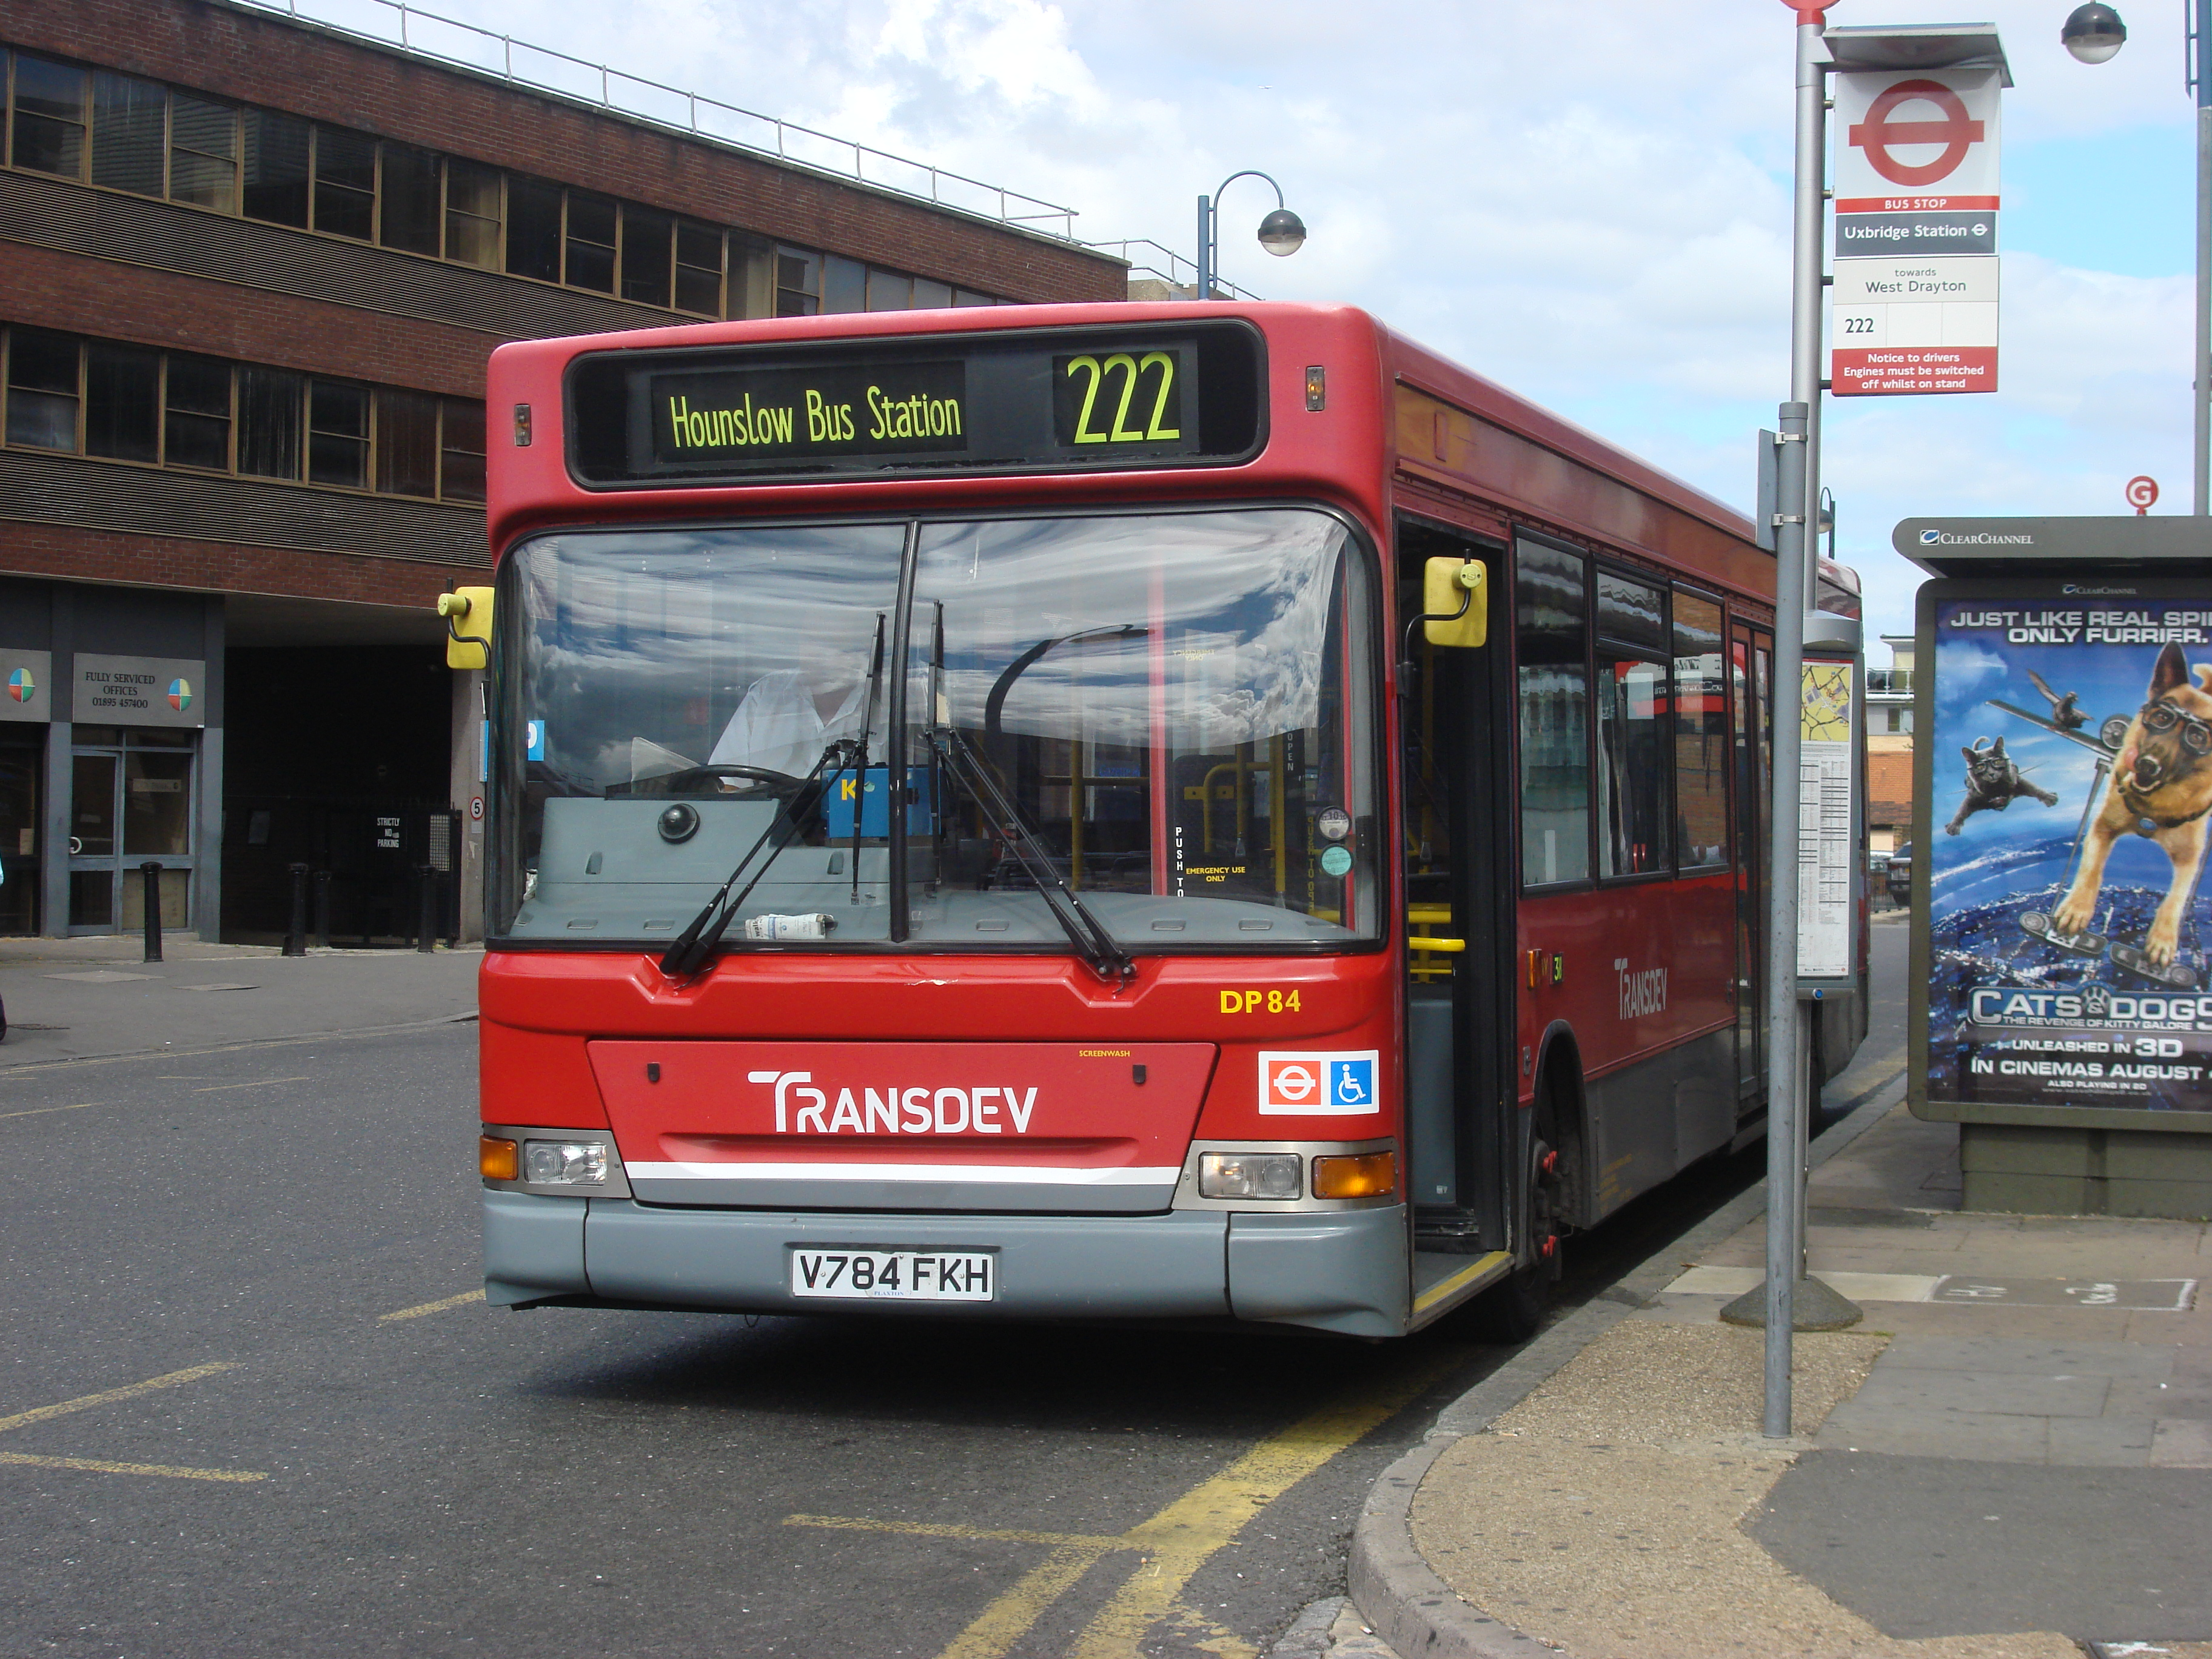 File:London Buses route 222 073 jpg - Wikimedia Commons